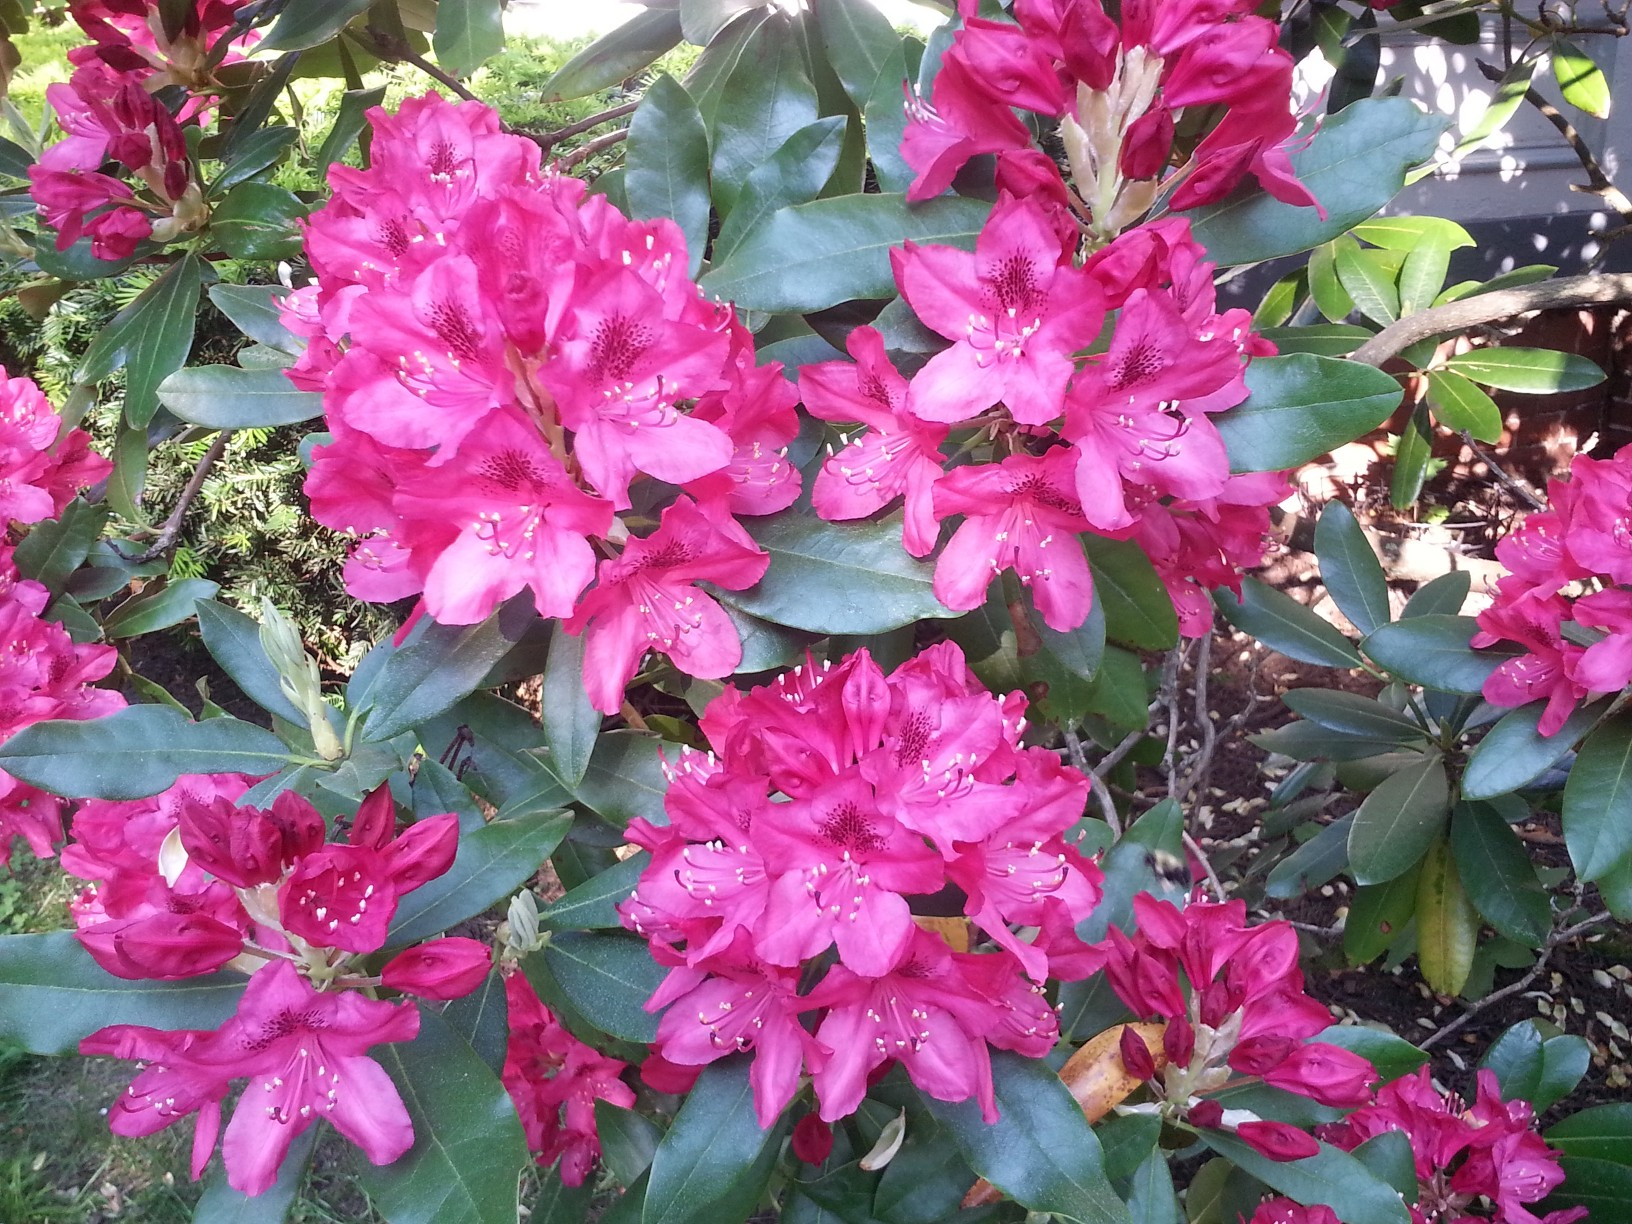 Close-up photo of rhododendron